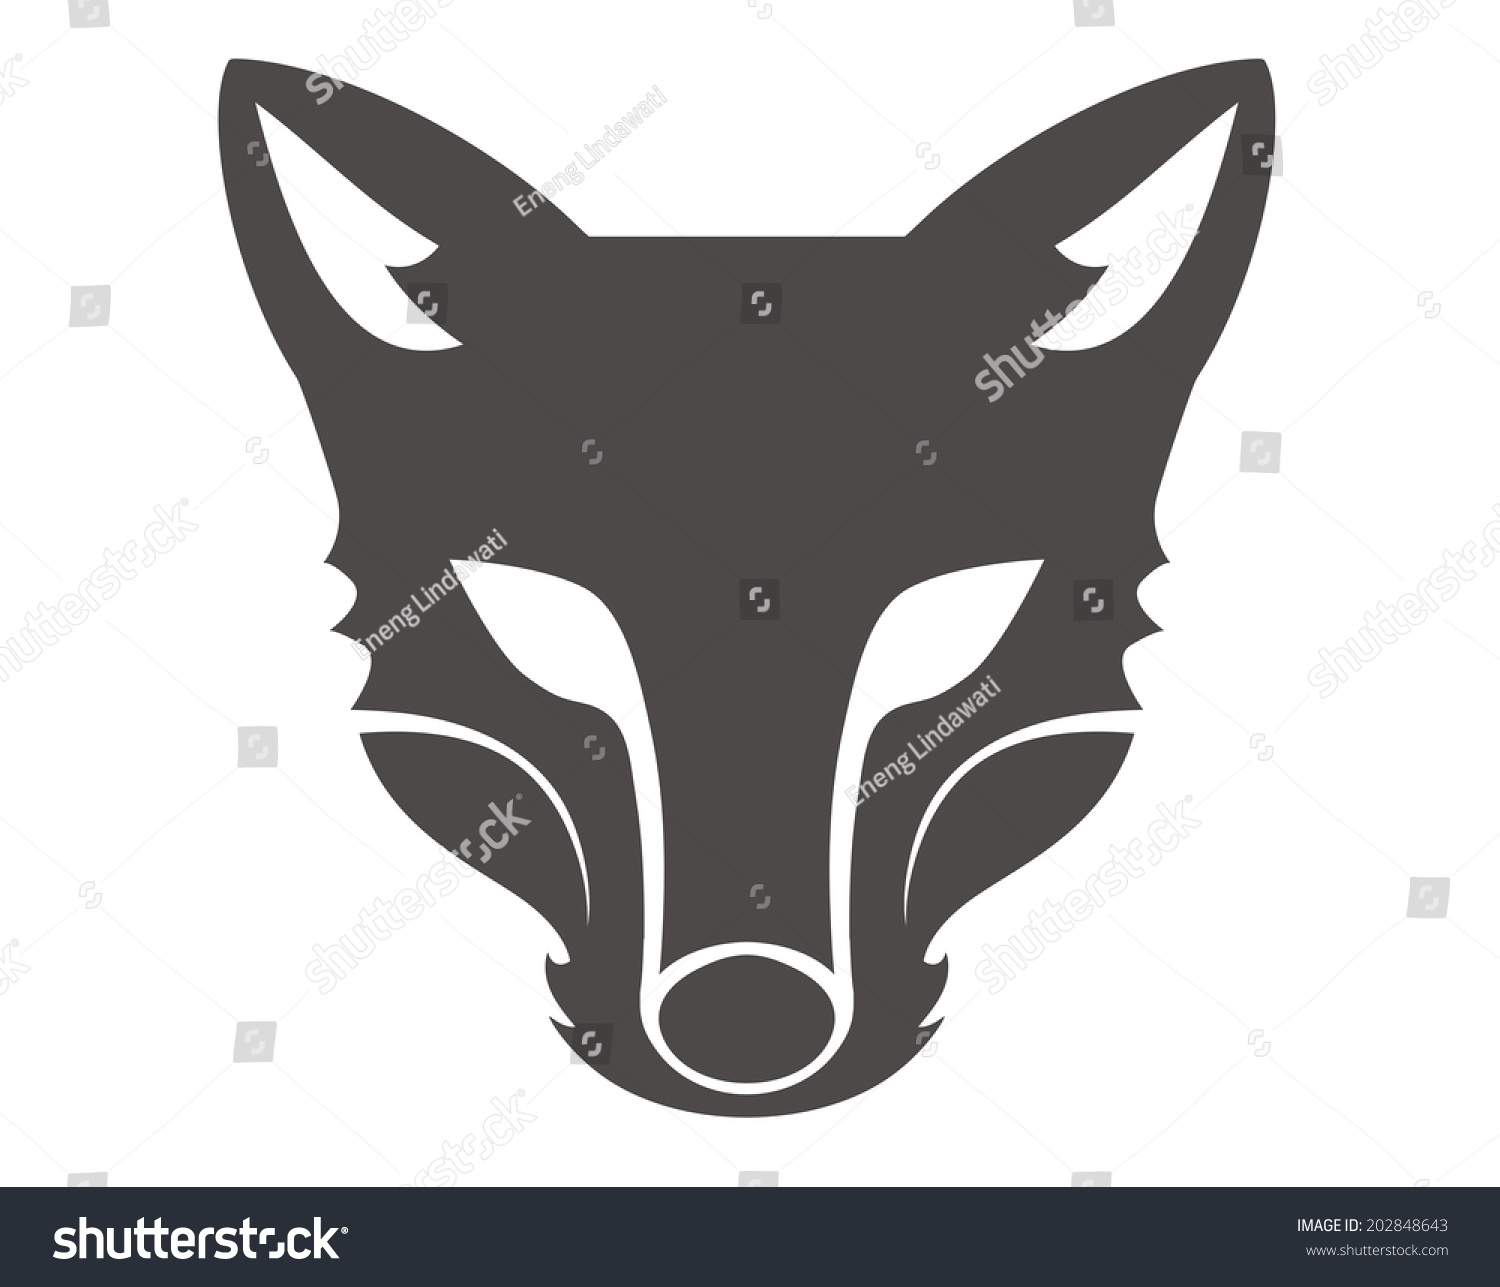 Fox Head Silhouette Stock Vector 202848643 - Shutterstock Raccoon Face Clip Art Black And White